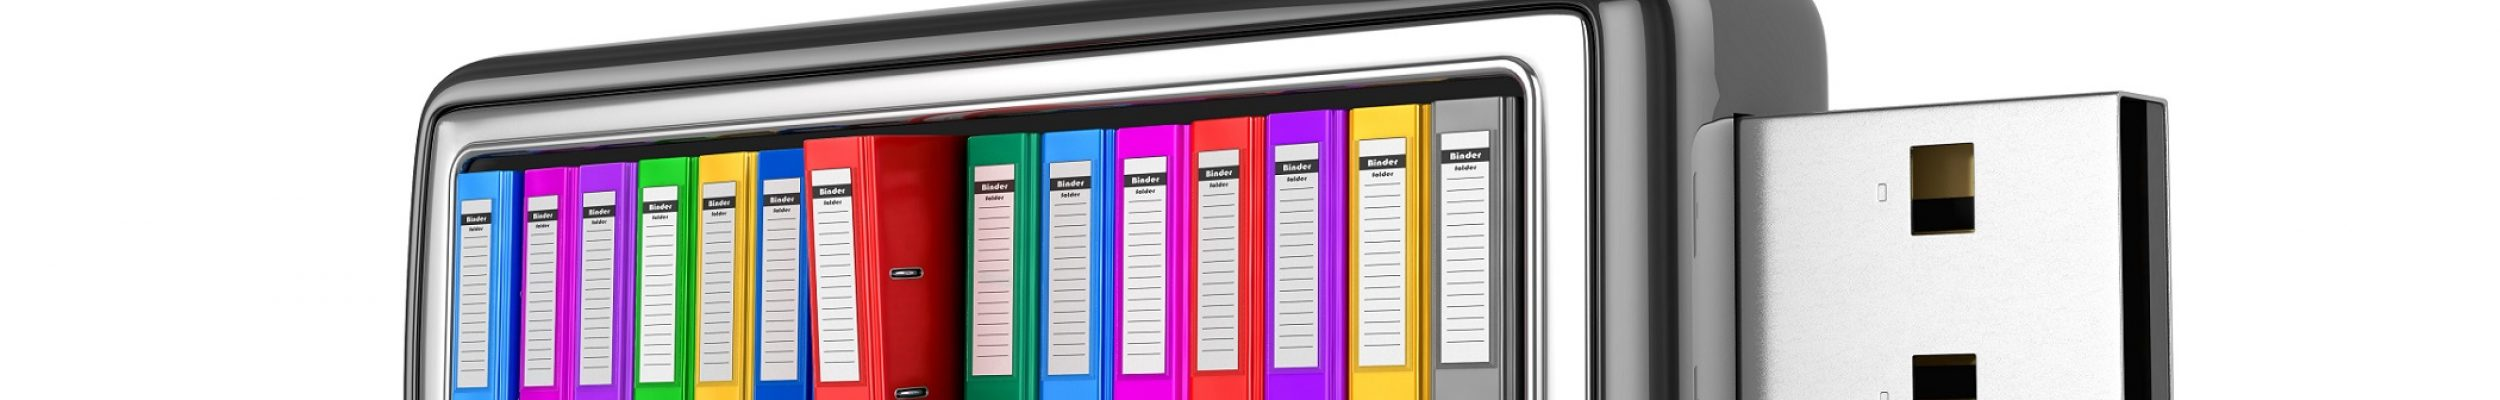 Multicolored office folder with documents inside a USB drive on a white background. 3D illustration.